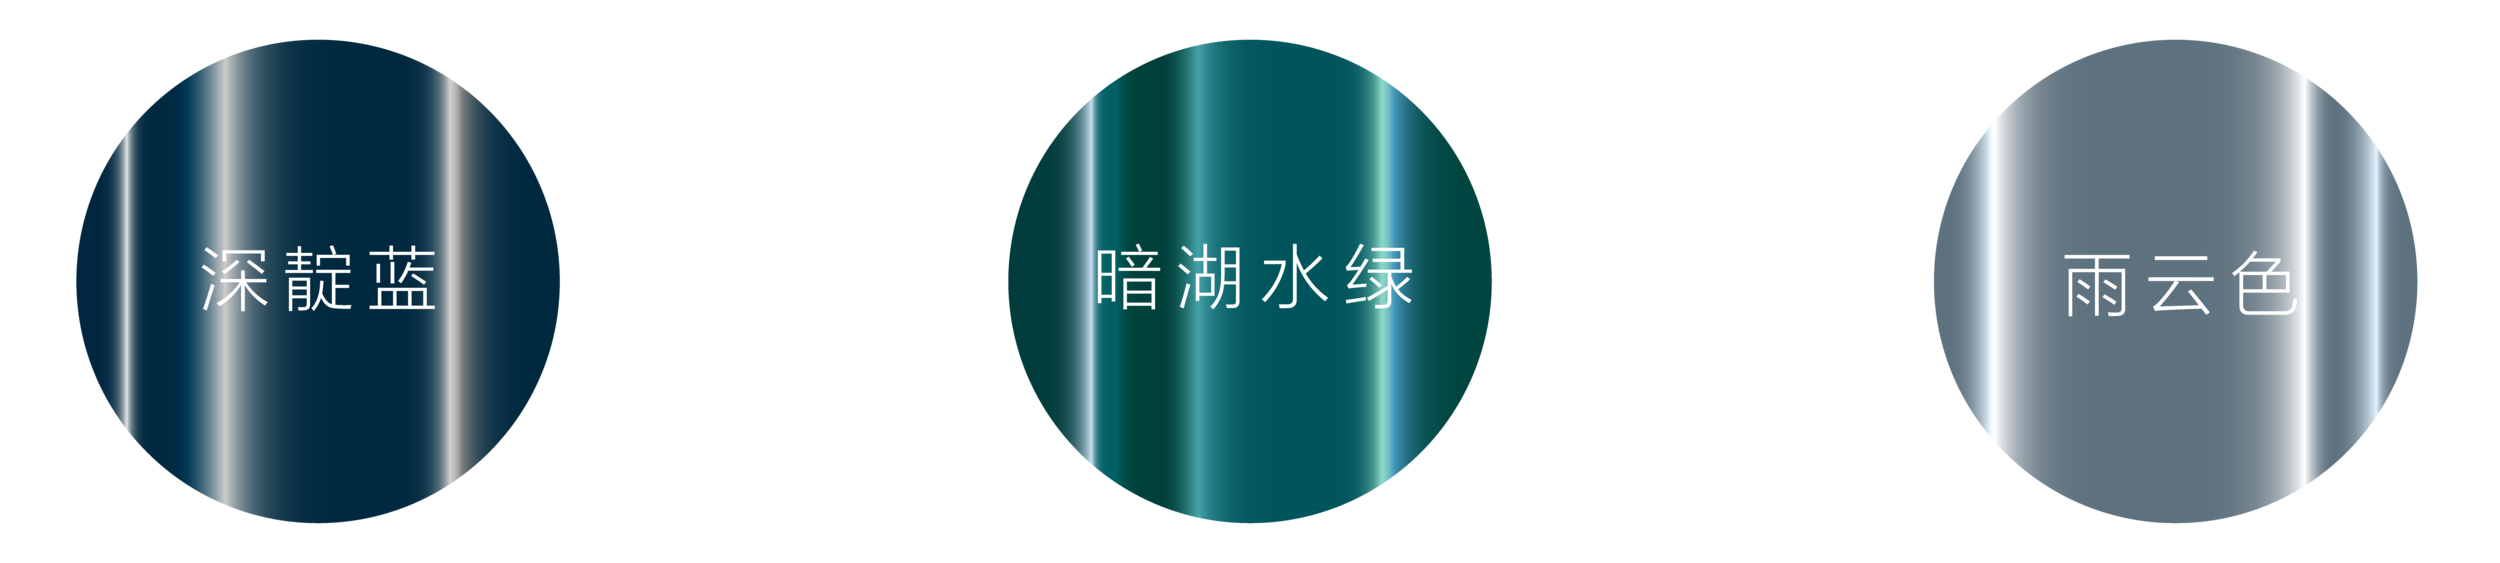 Color icon26-17.png